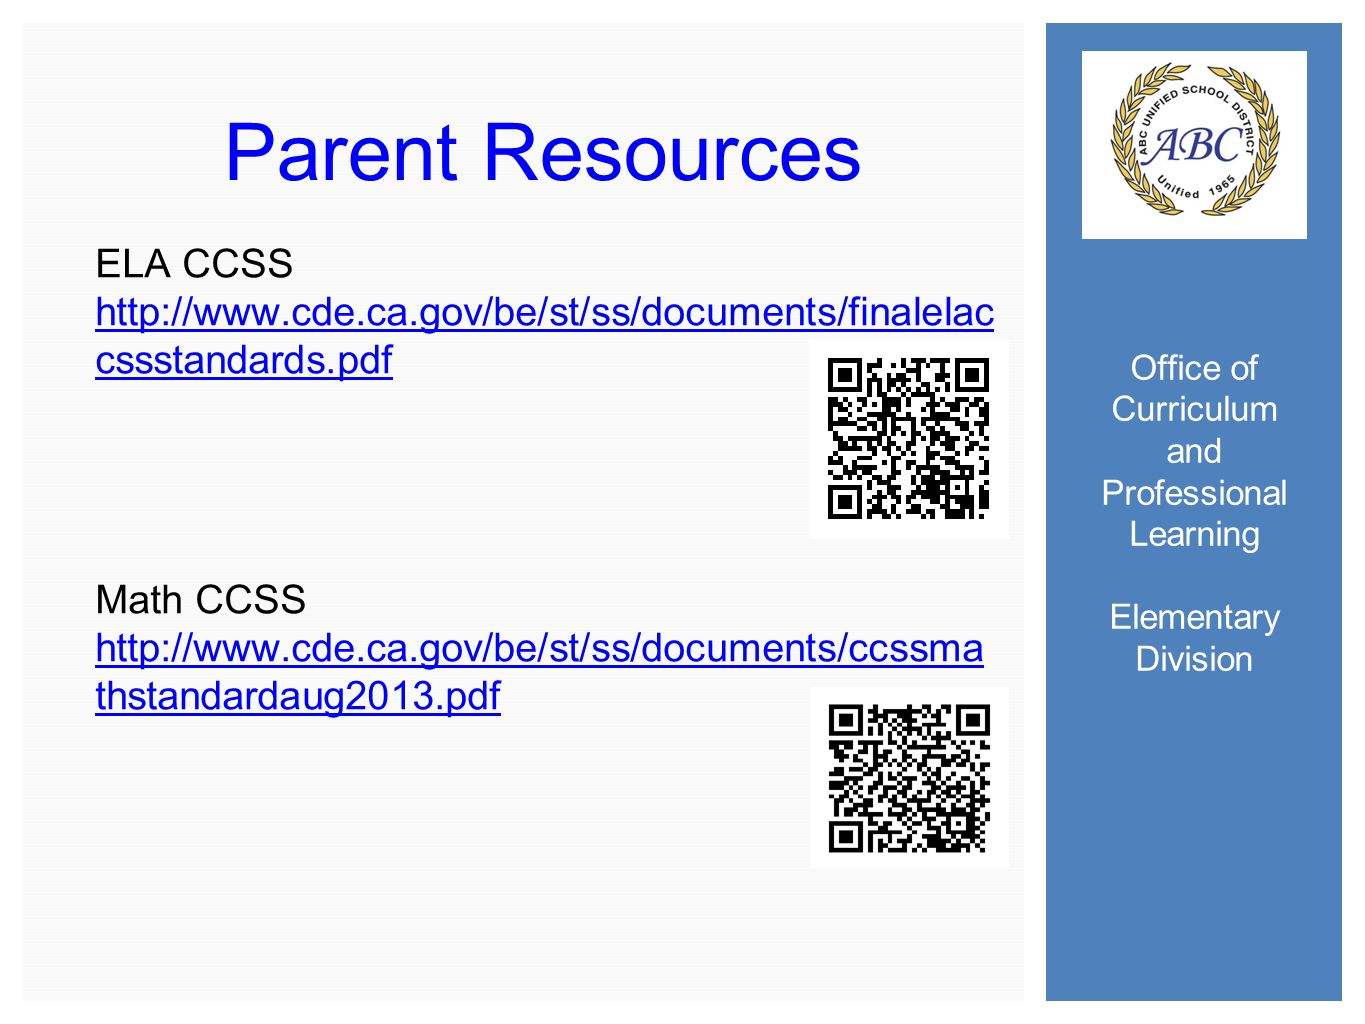 Office of Curriculum and Professional Learning Elementary Division Parent Resources ELA CCSS   cssstandards.pdf Math CCSS   thstandardaug2013.pdf